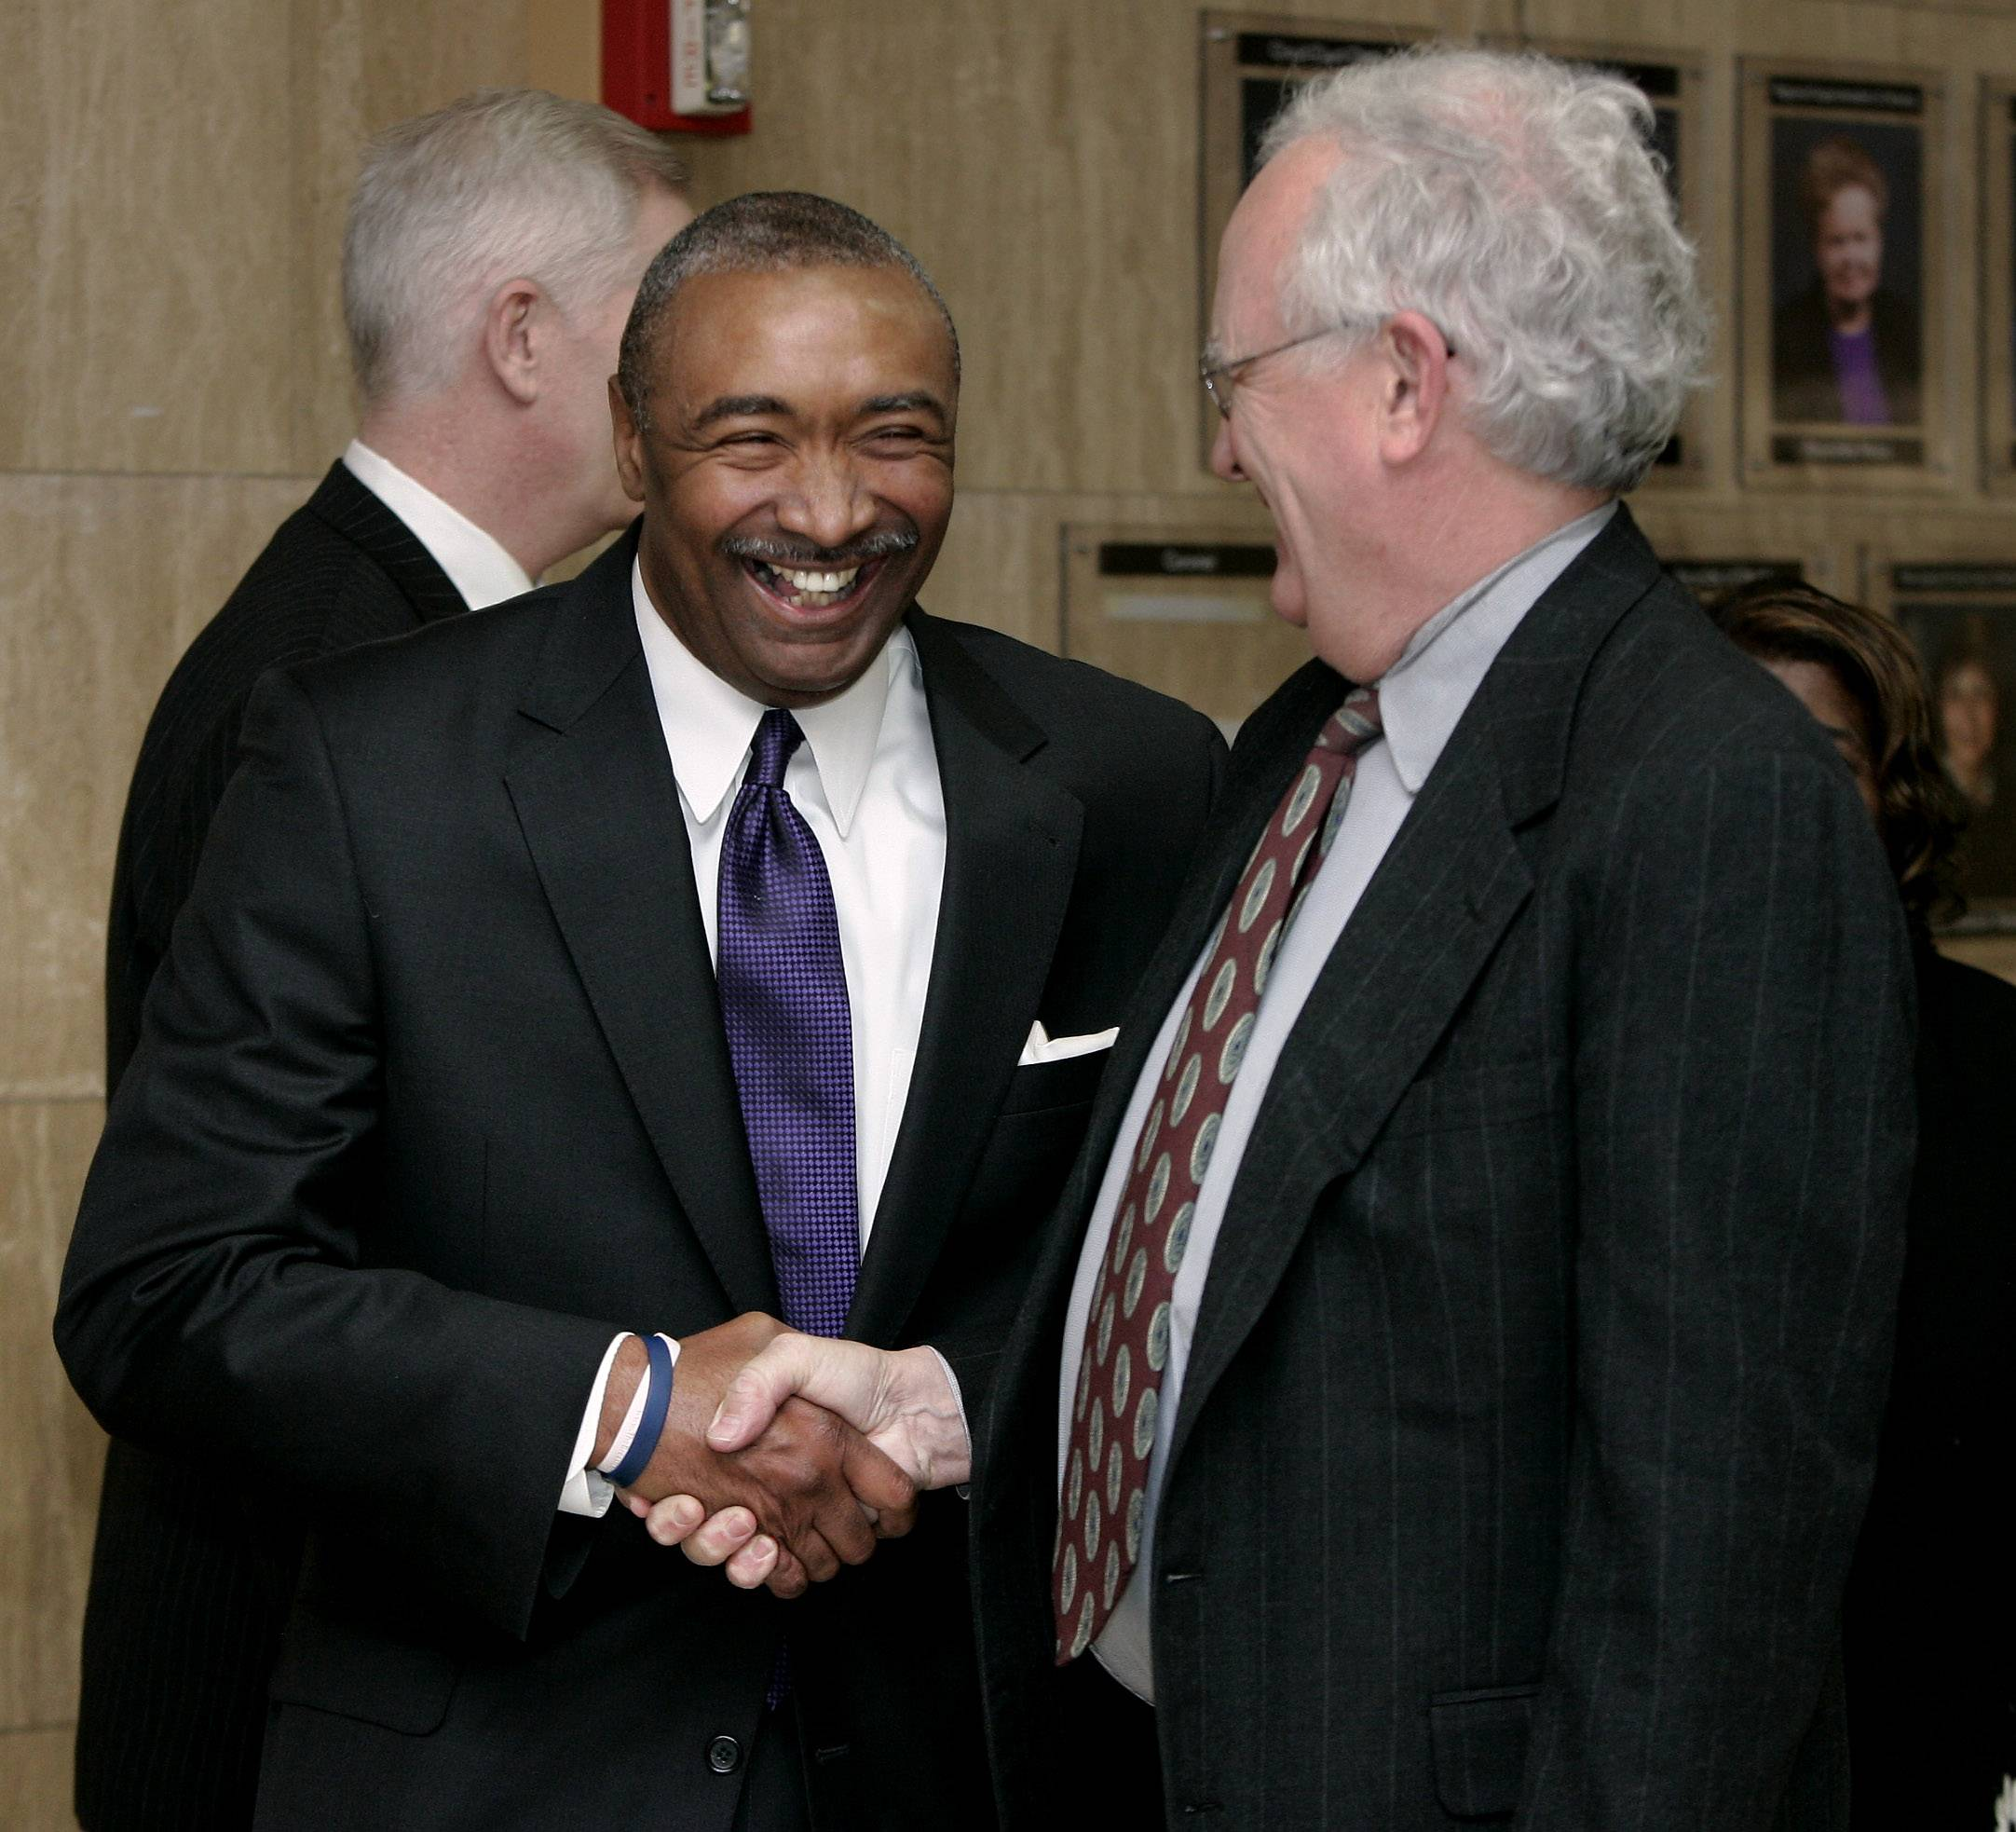 Artis Yancey, left, with former Lake County State's Attorney Michael Waller after Yancey was named Lake County coroner in 2011.